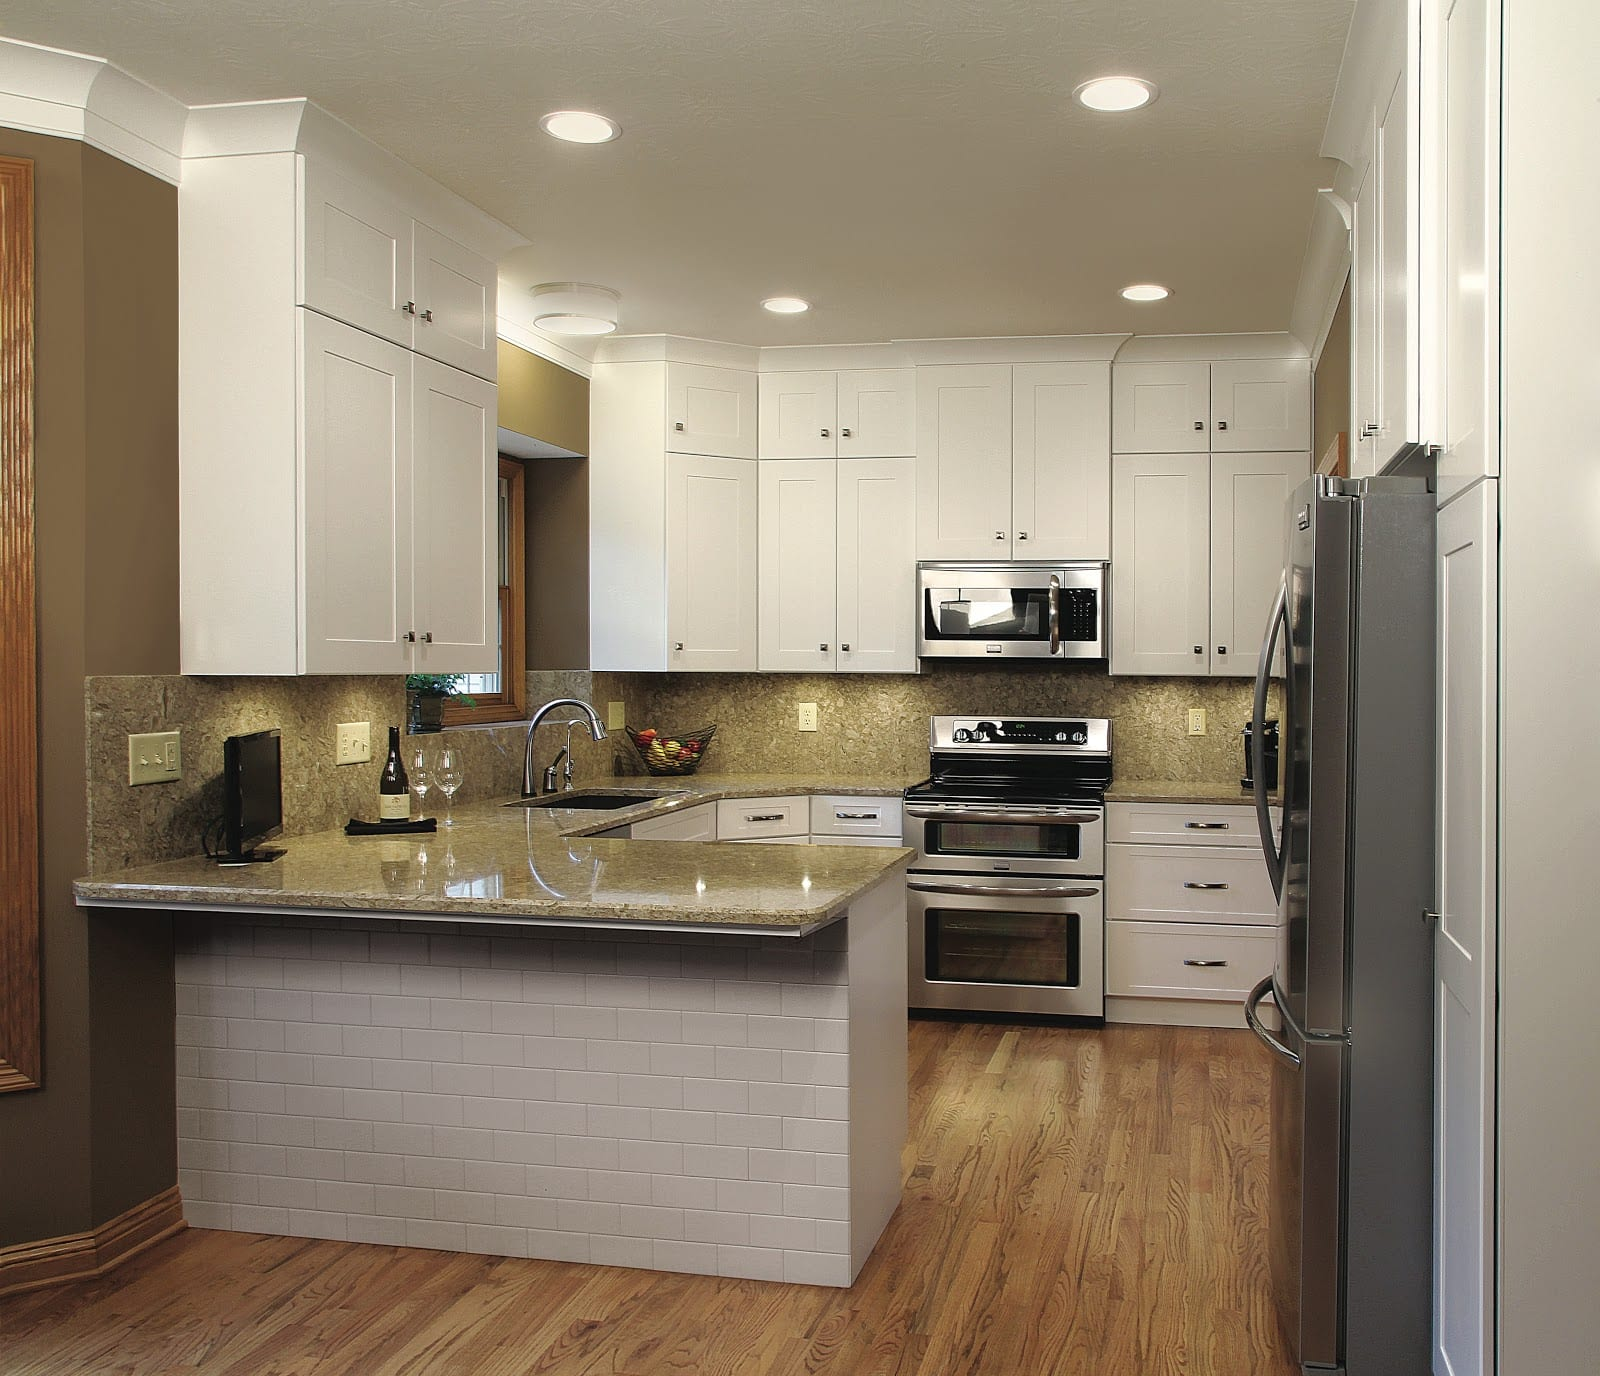 a picture of the kitchen after refacing featuring a white cabinet extended to the ceiling and will cornered countertop and proper placement of the appliances